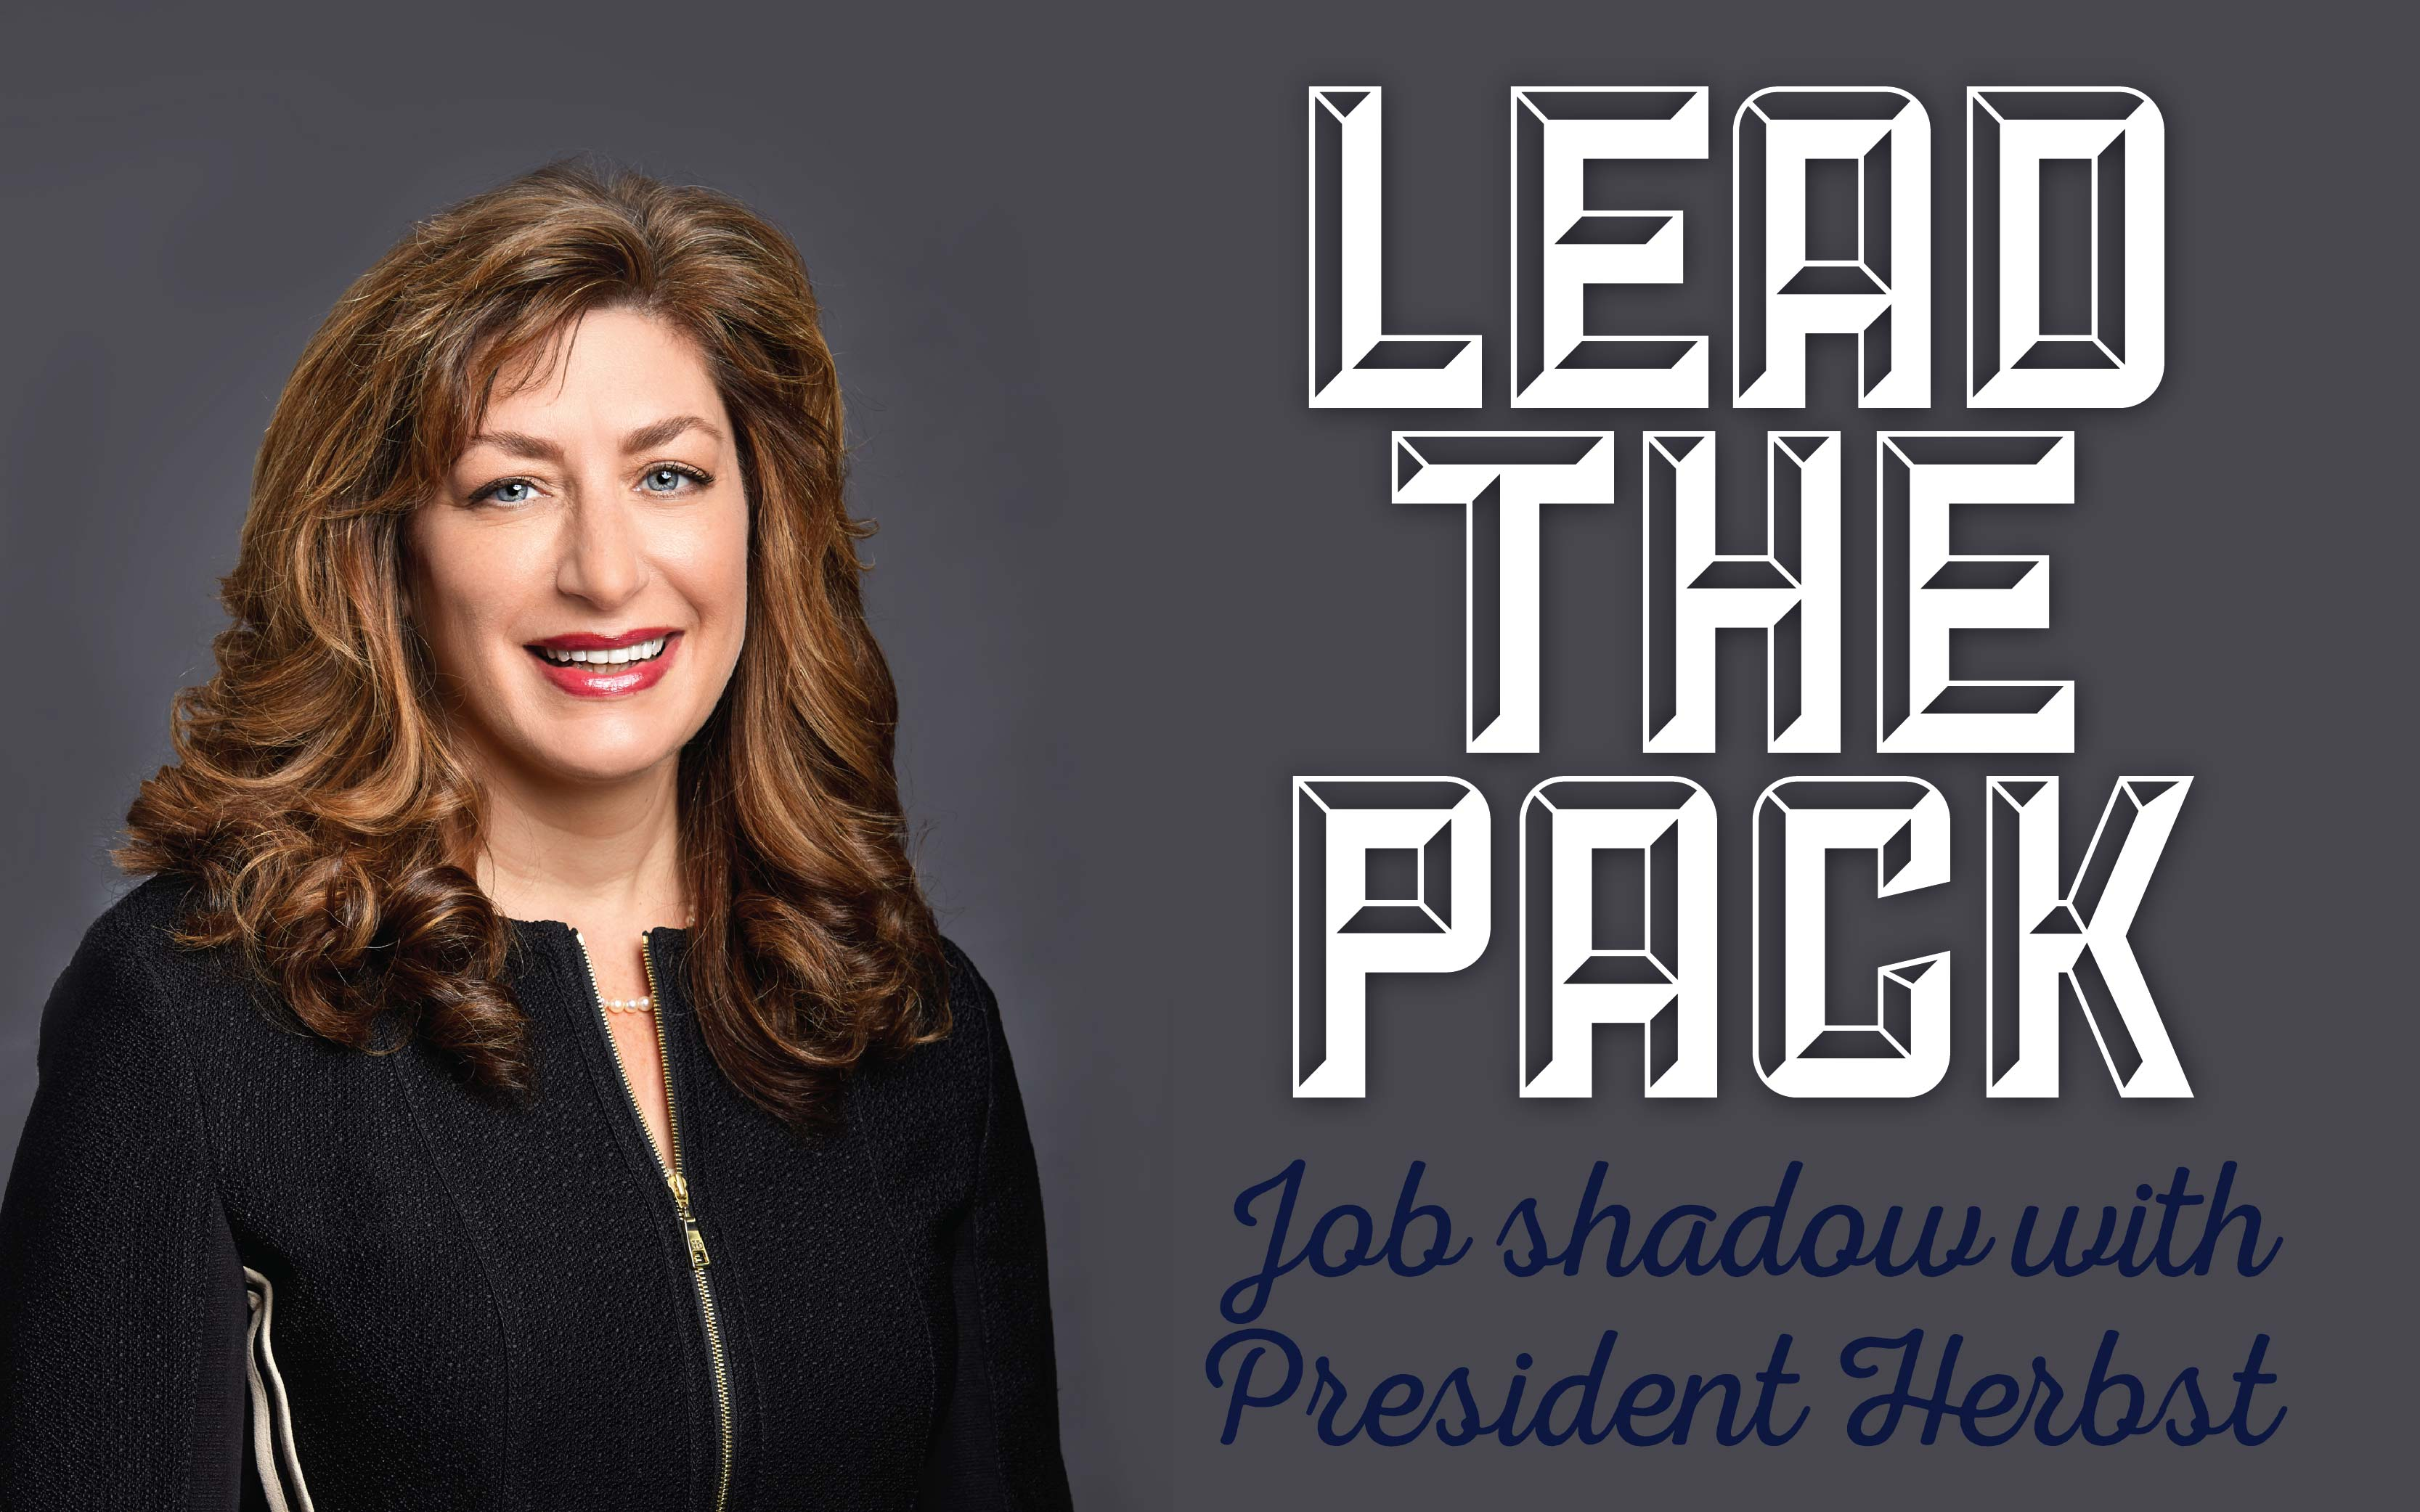 lead the pack job shadow president herbst uconn center for lead the pack job shadow president herbst uconn center for career development